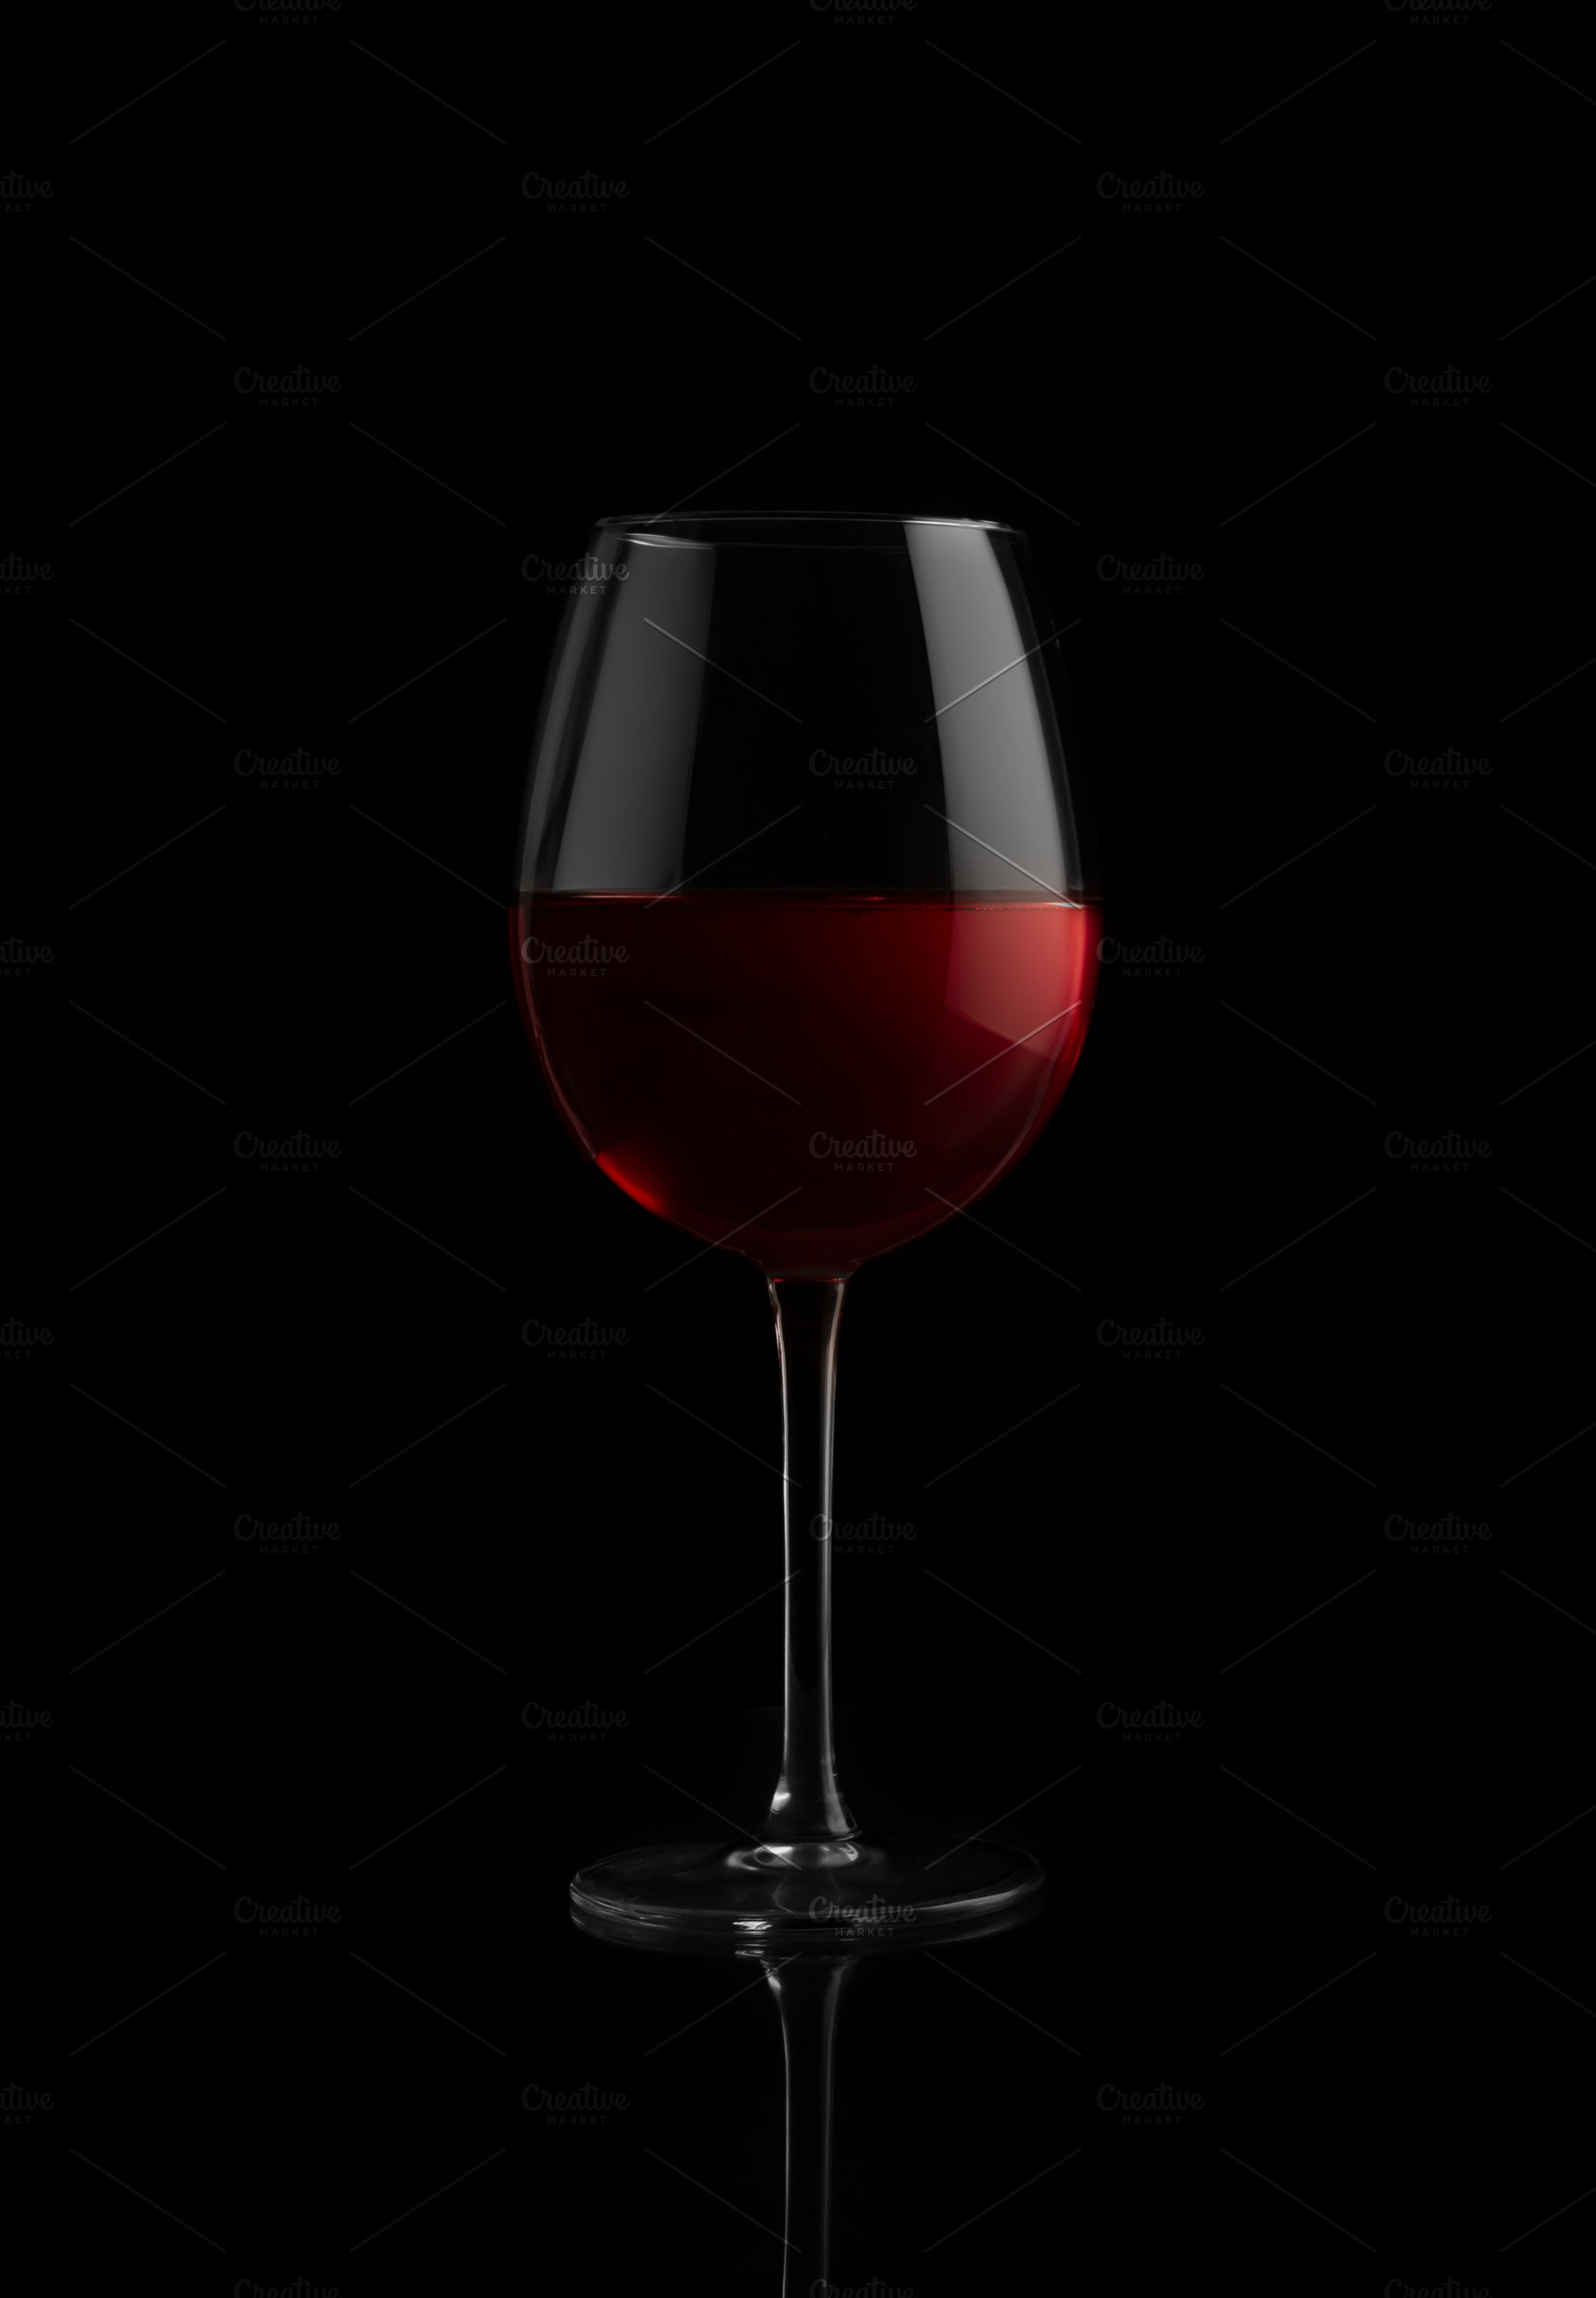 Red wine glass on a black background High Quality Food Images 1820x2620